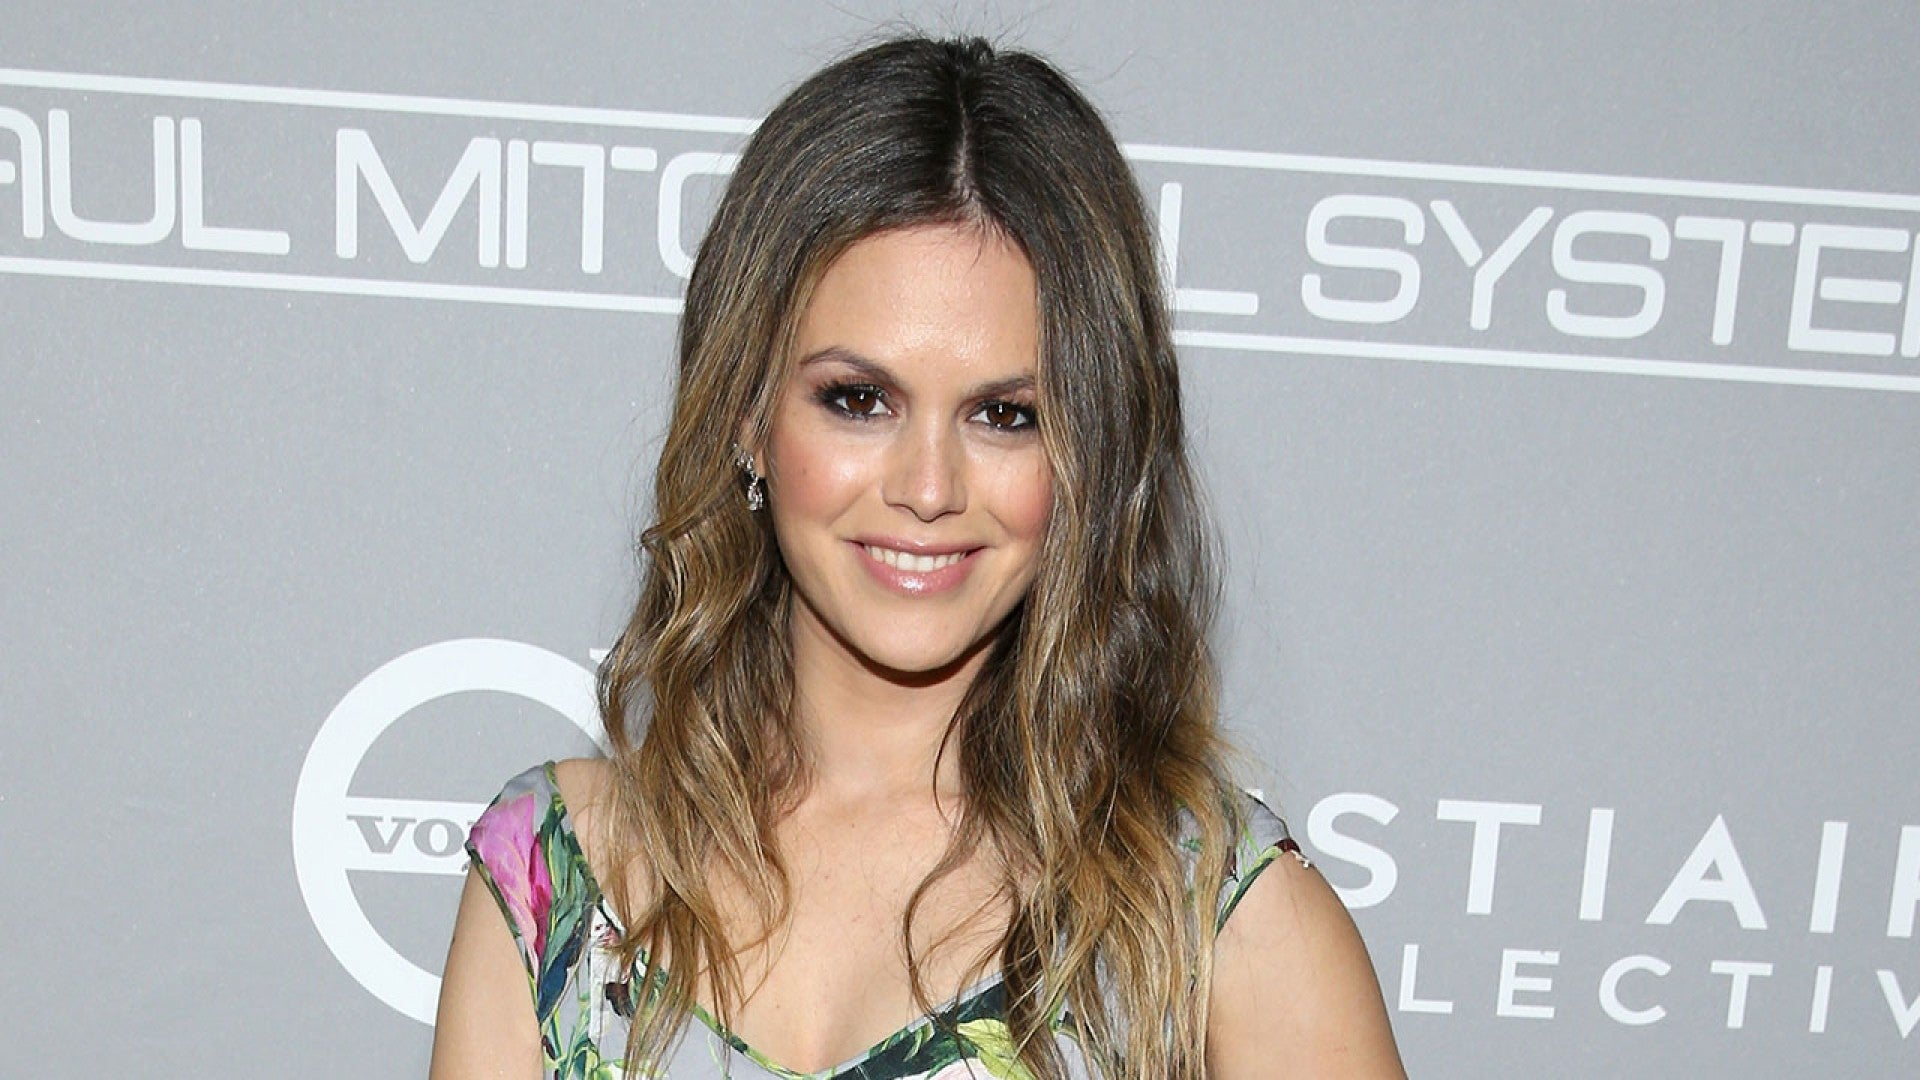 New couple alert! Bill Hader takes Rachel Bilson 'to meet his family'- Details inside